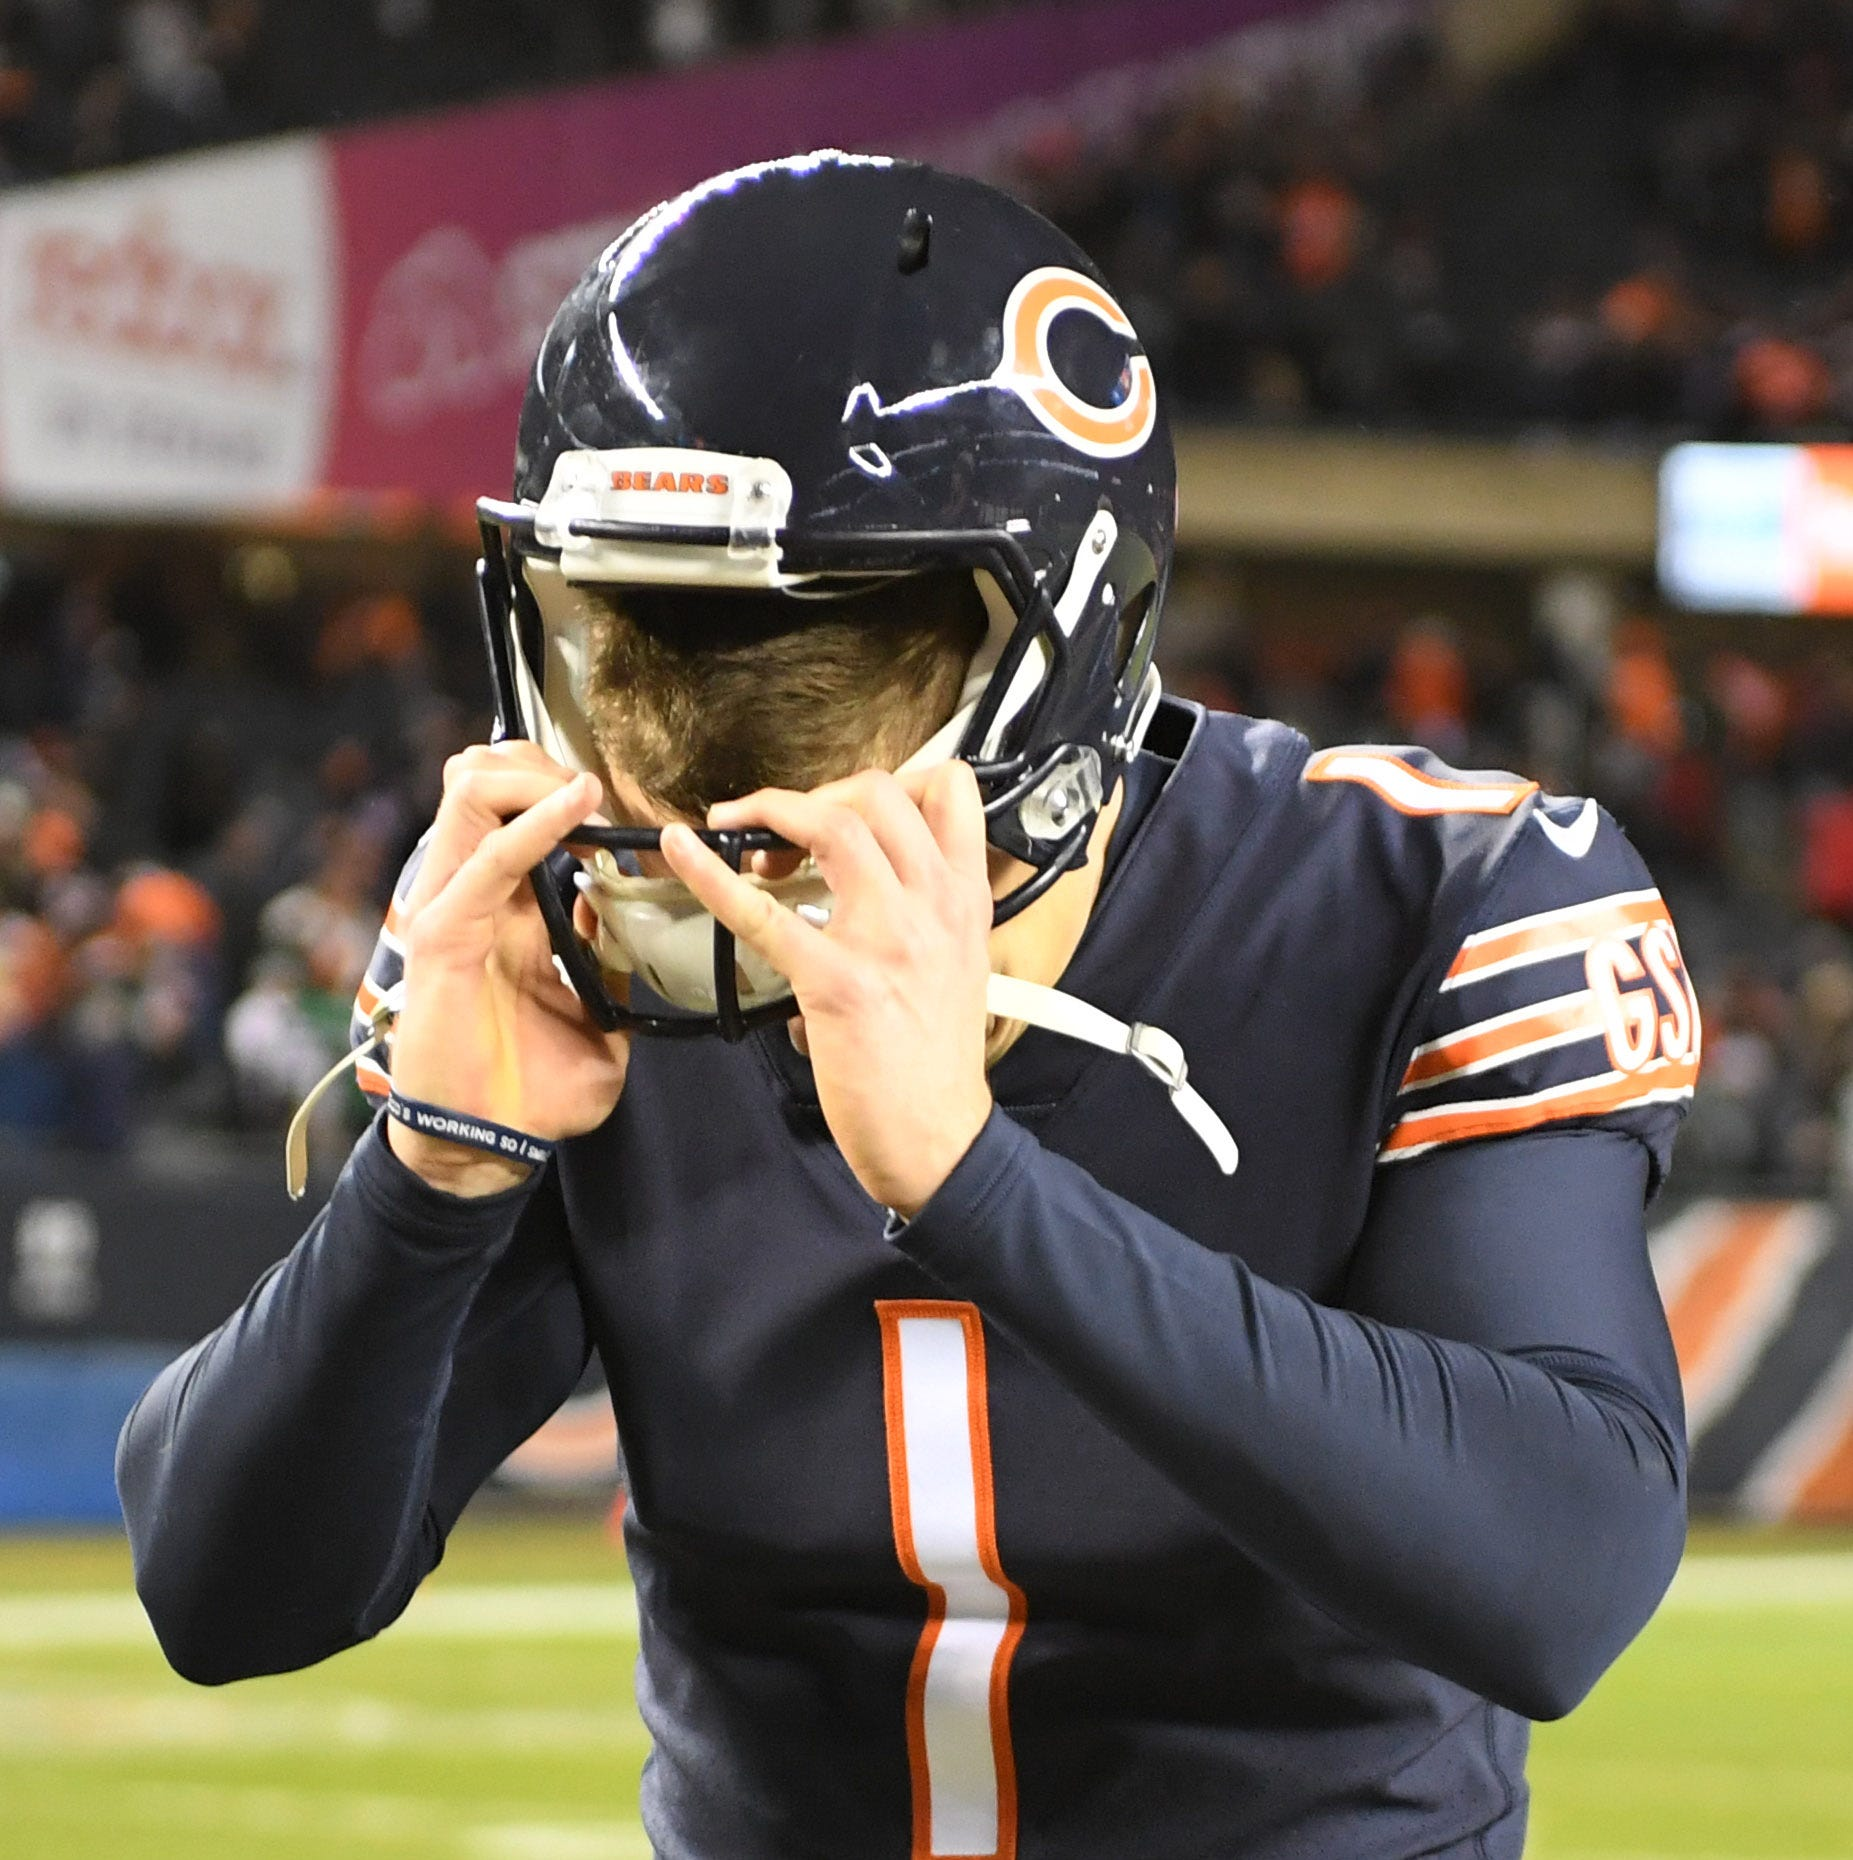 Local kickers weigh in on reaction to Cody Parkey's ill-fated field goal try